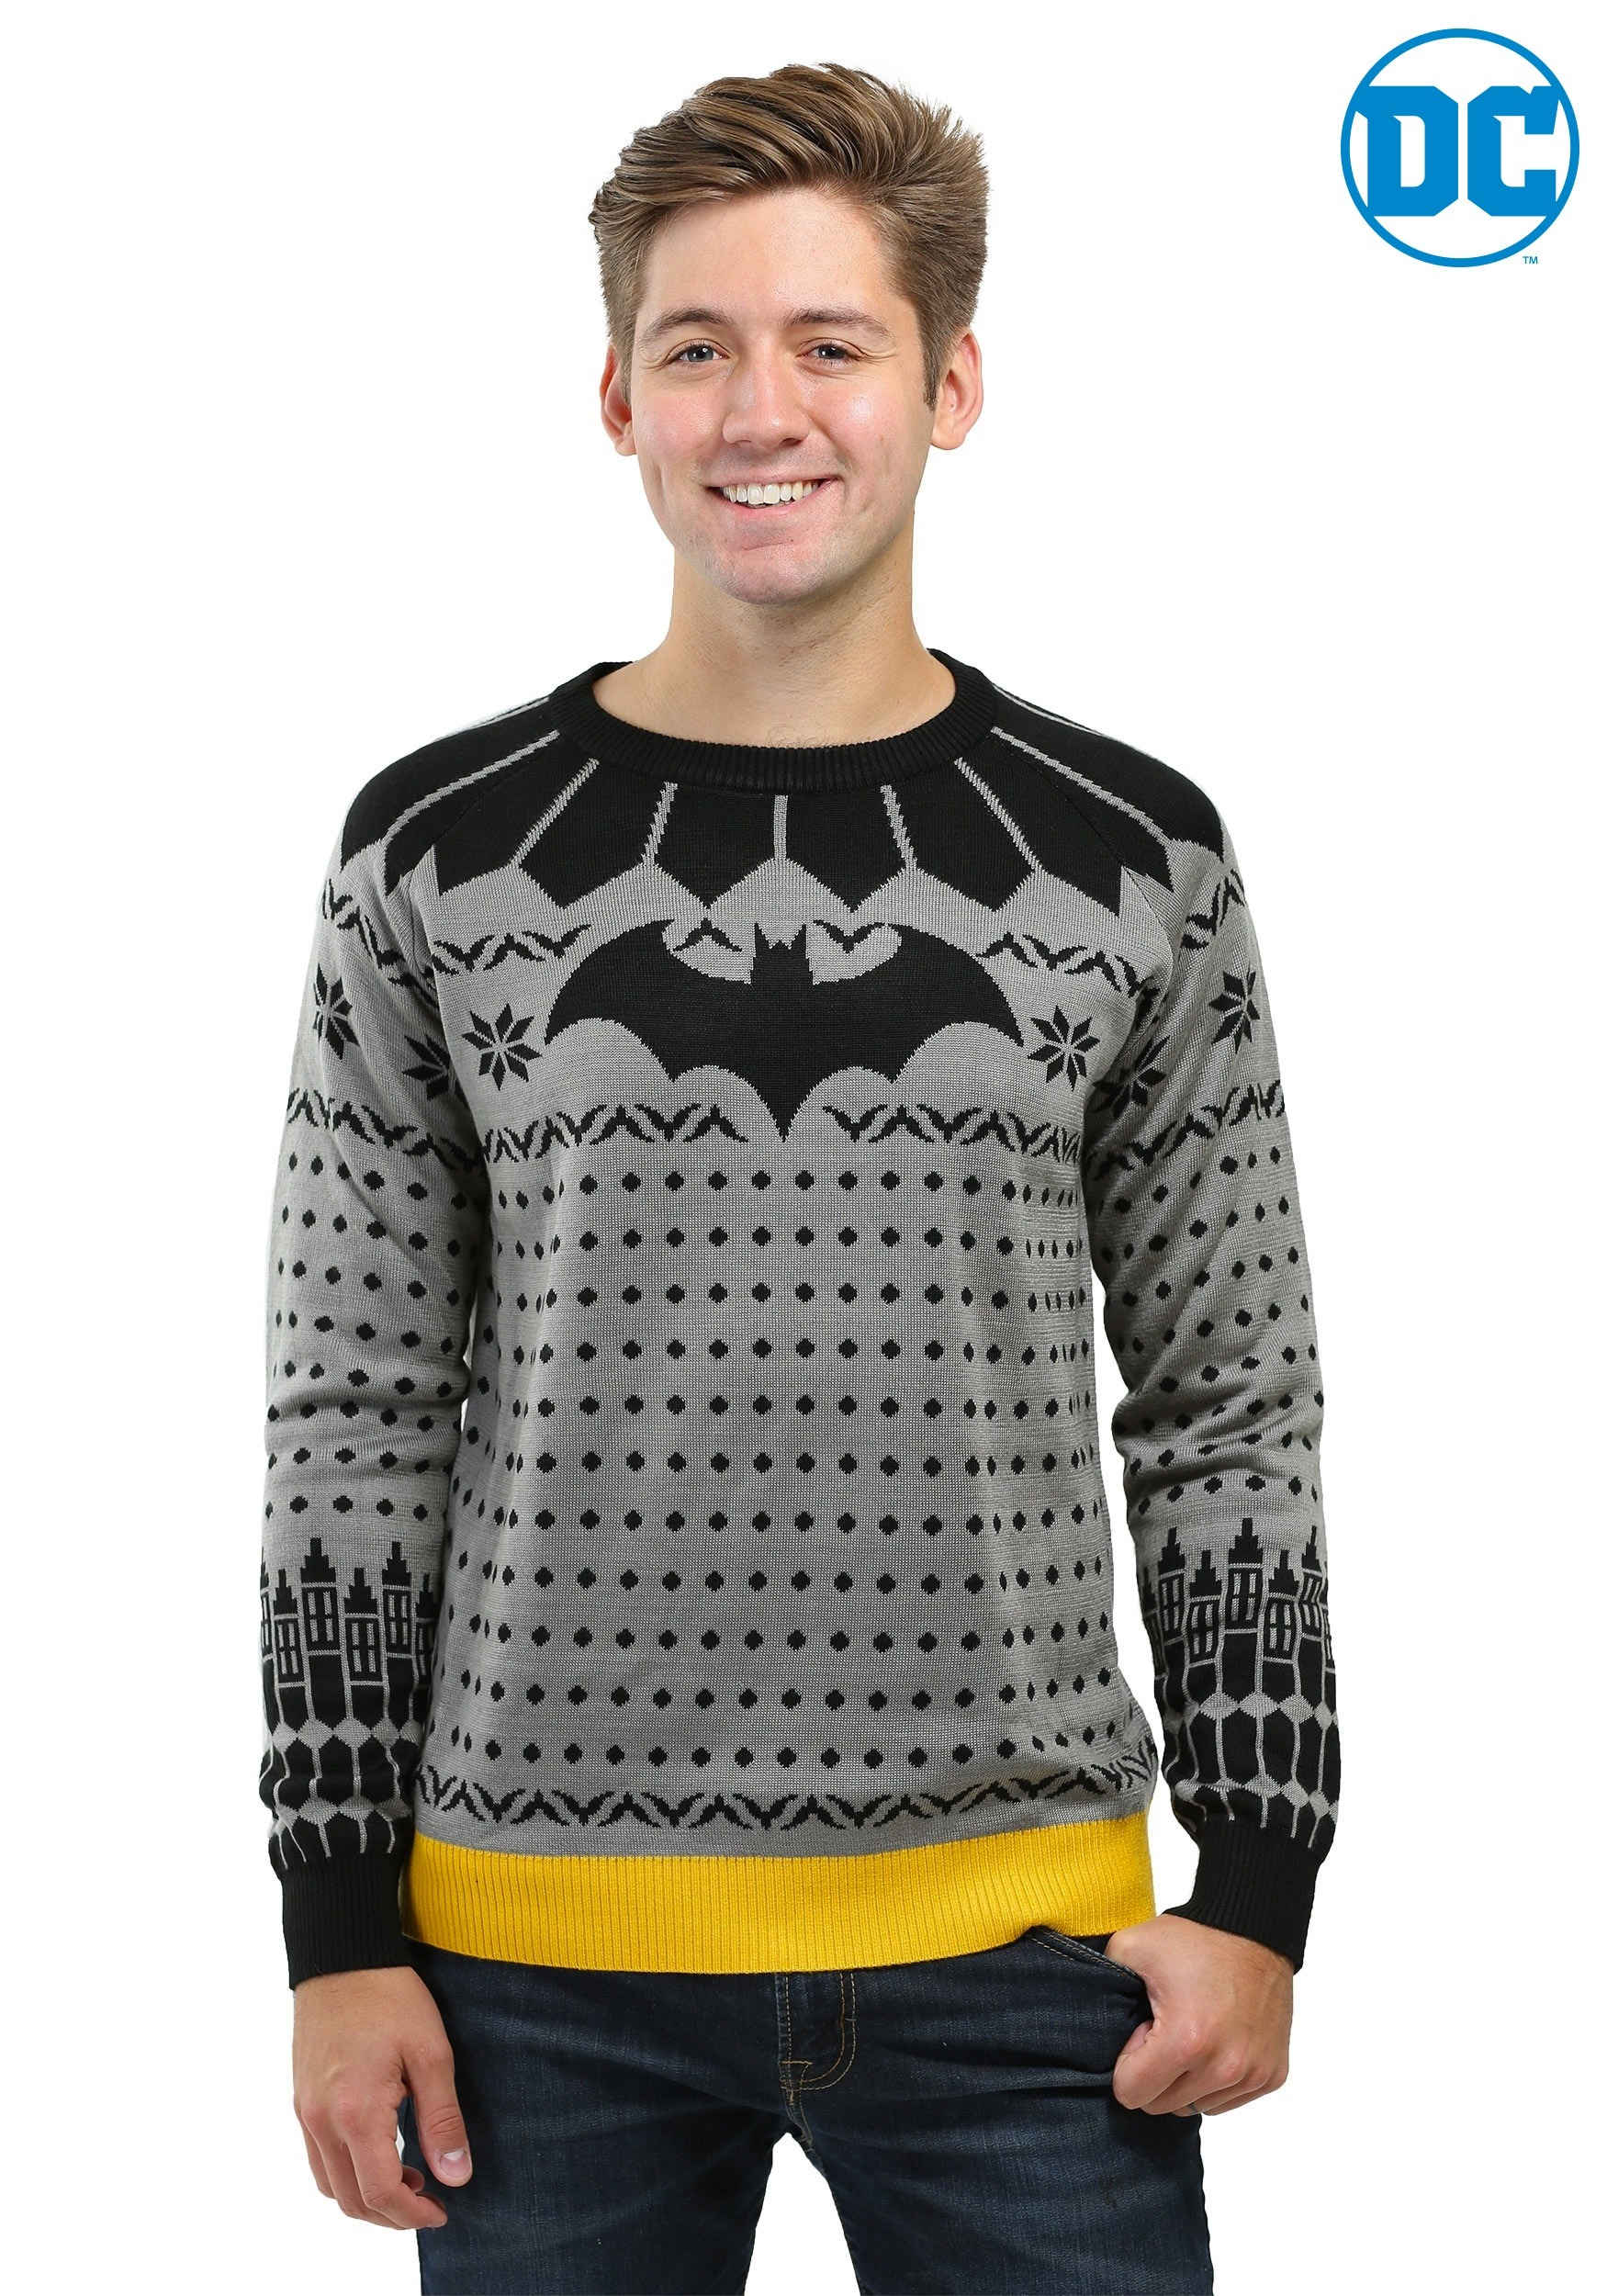 Batman Ugly Christmas Sweater 2020 Classic Batman Ugly Christmas Sweater